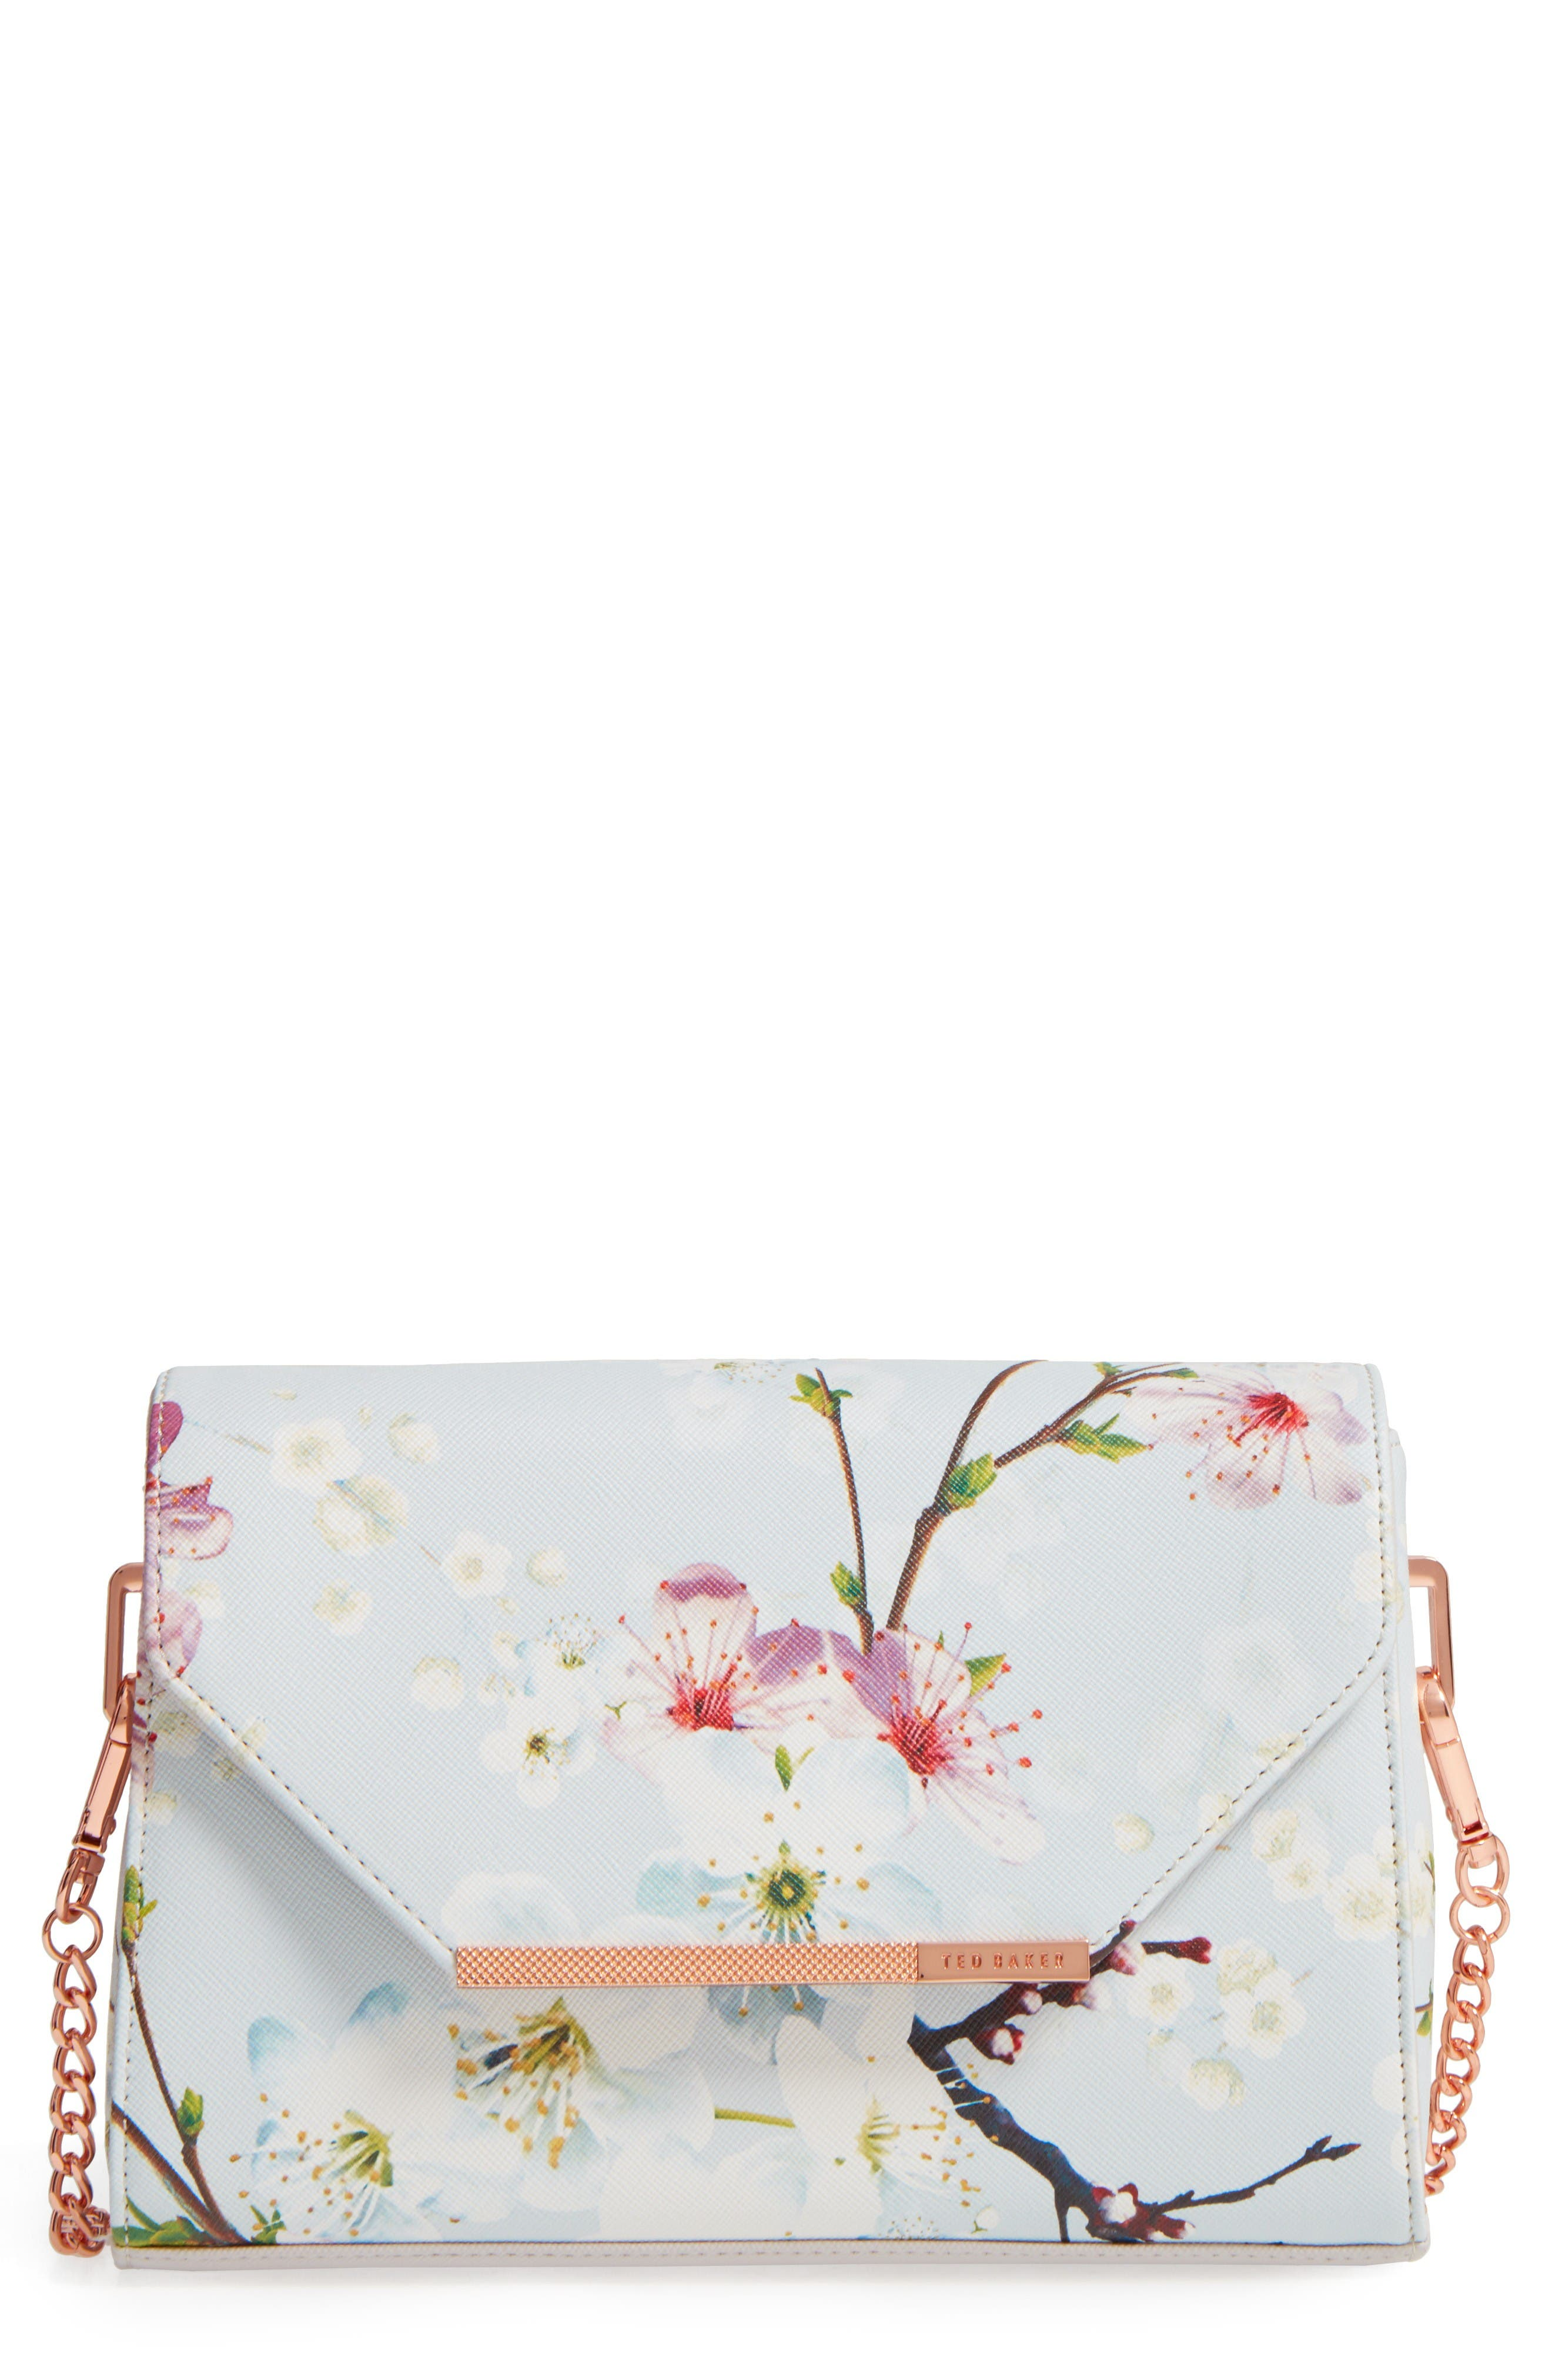 Alternate Image 1 Selected - Ted Baker London Hadly Cherry Blossom Faux Leather Crossbody Bag